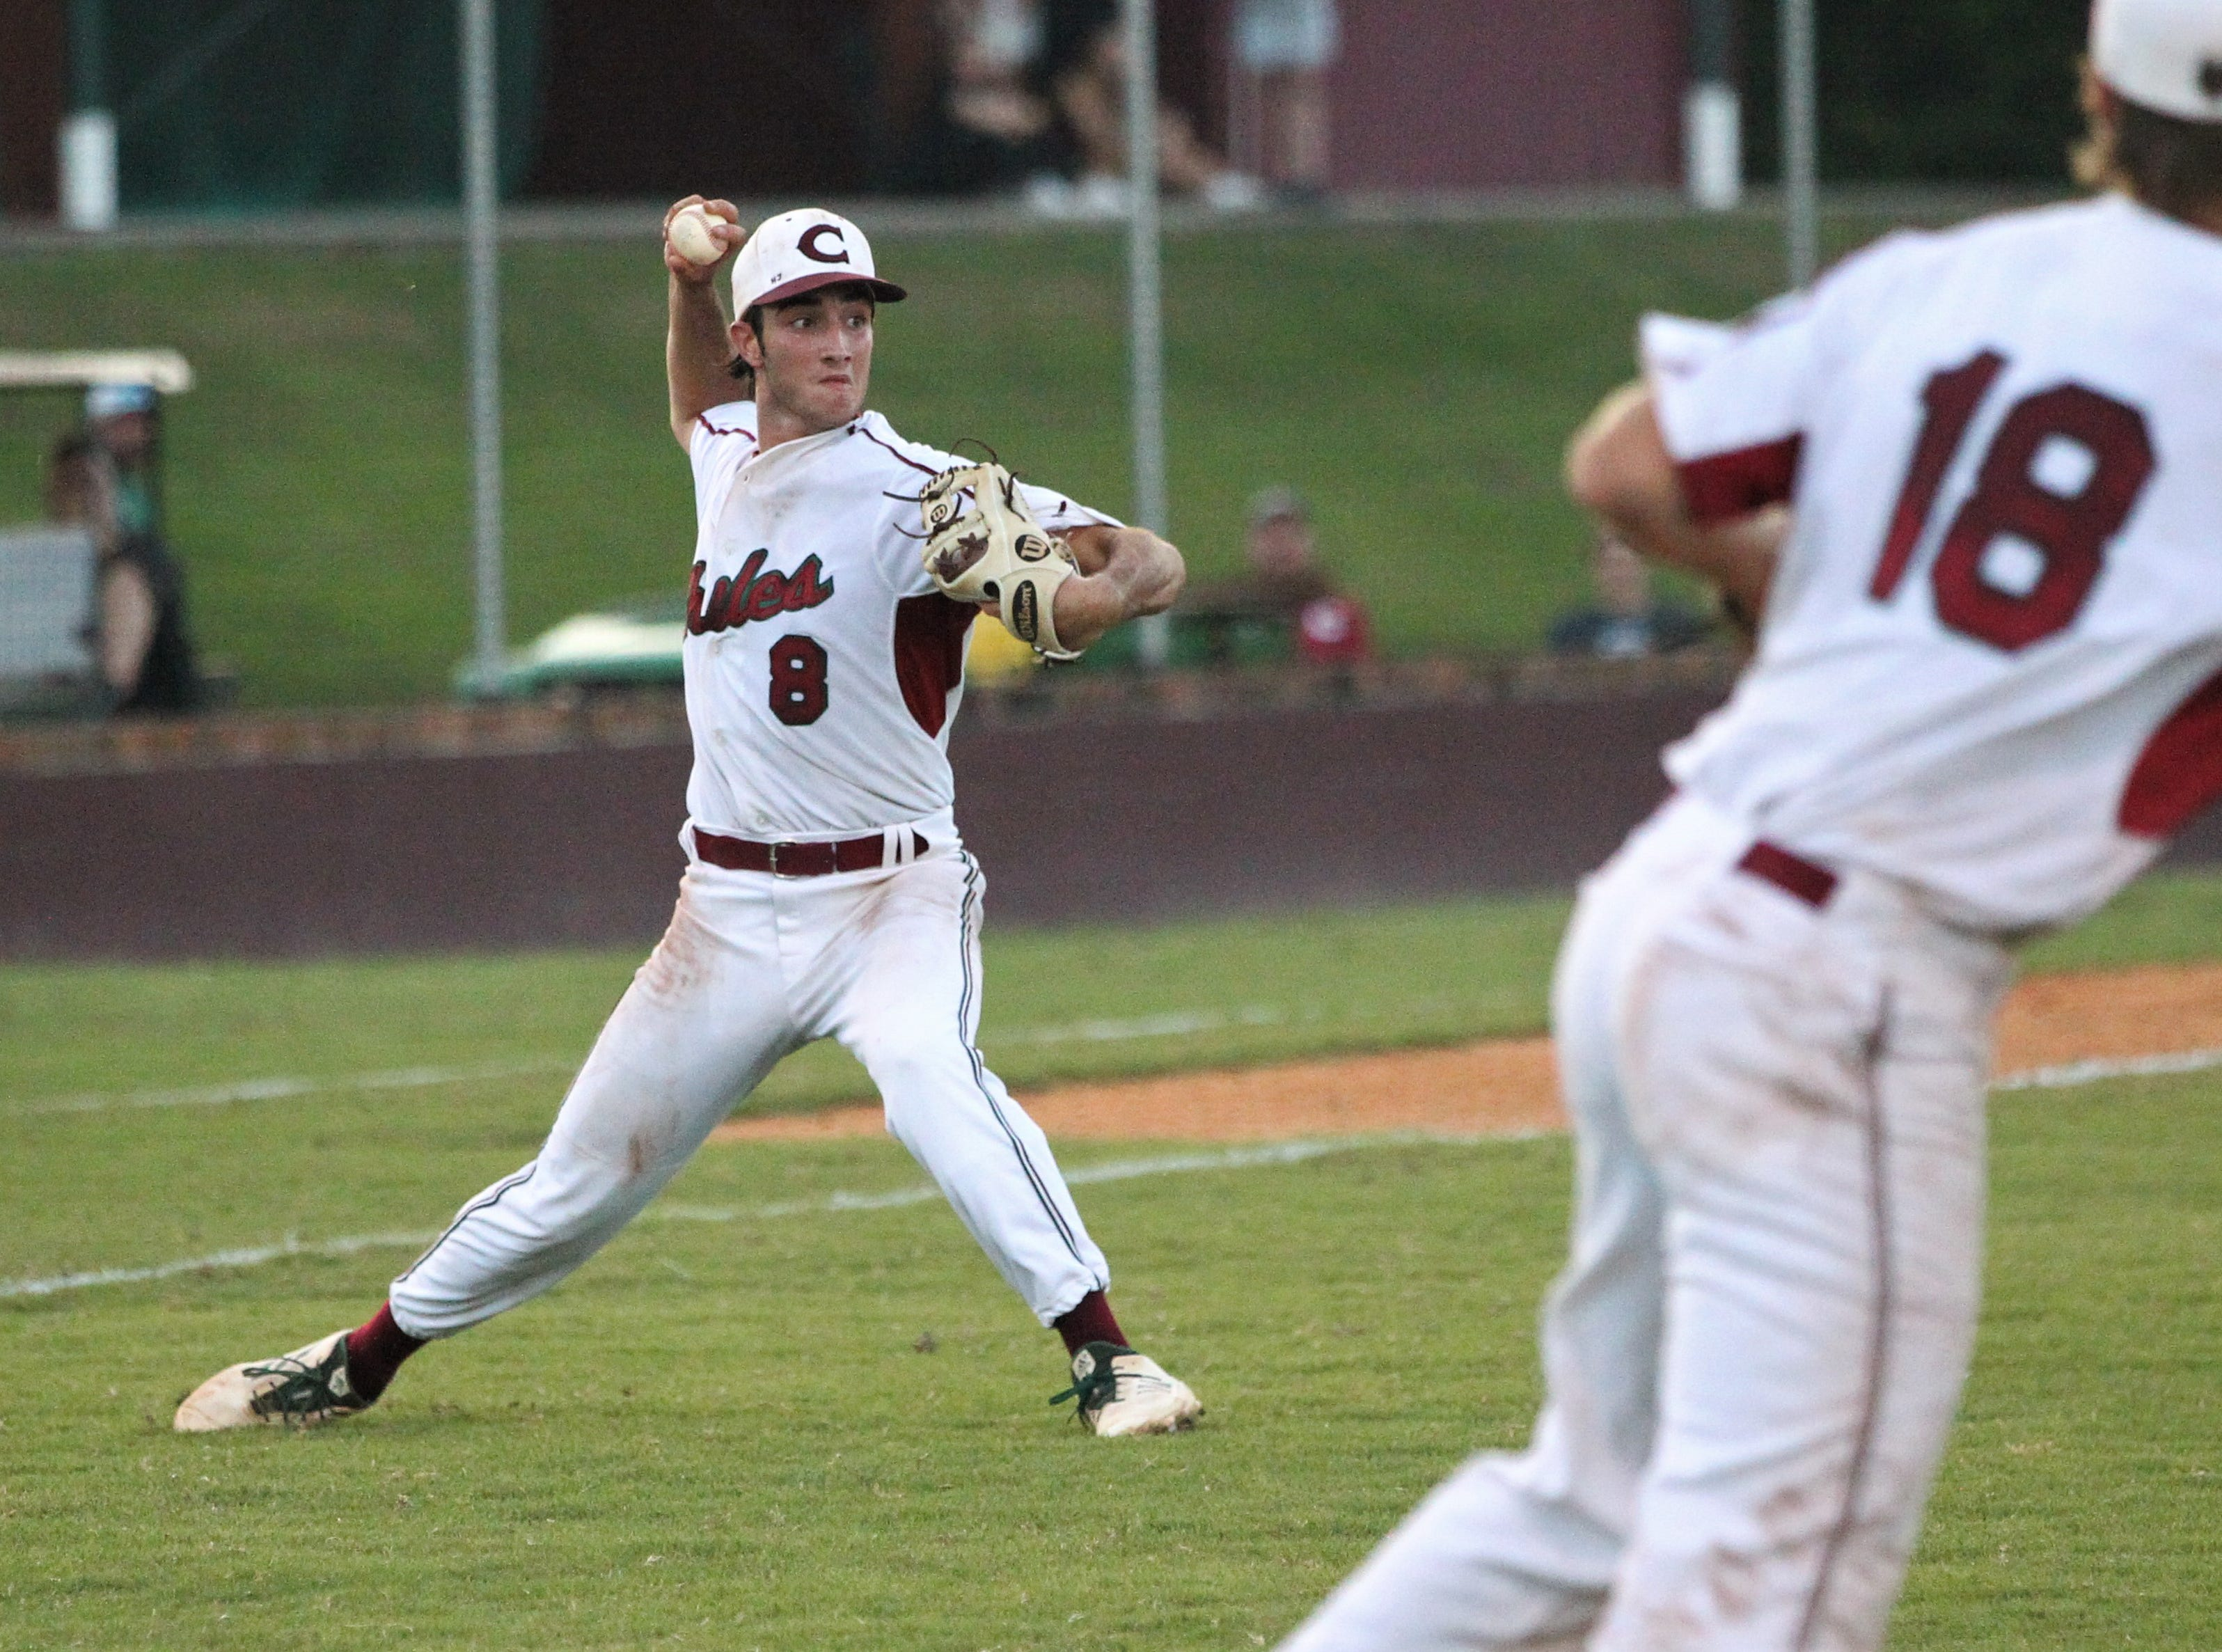 Chiles senior pitcher Cameron Kelly fields his position on a bunt as Chiles beat Leon 10-6 during a District 2-8A semifinal on May 7, 2019.